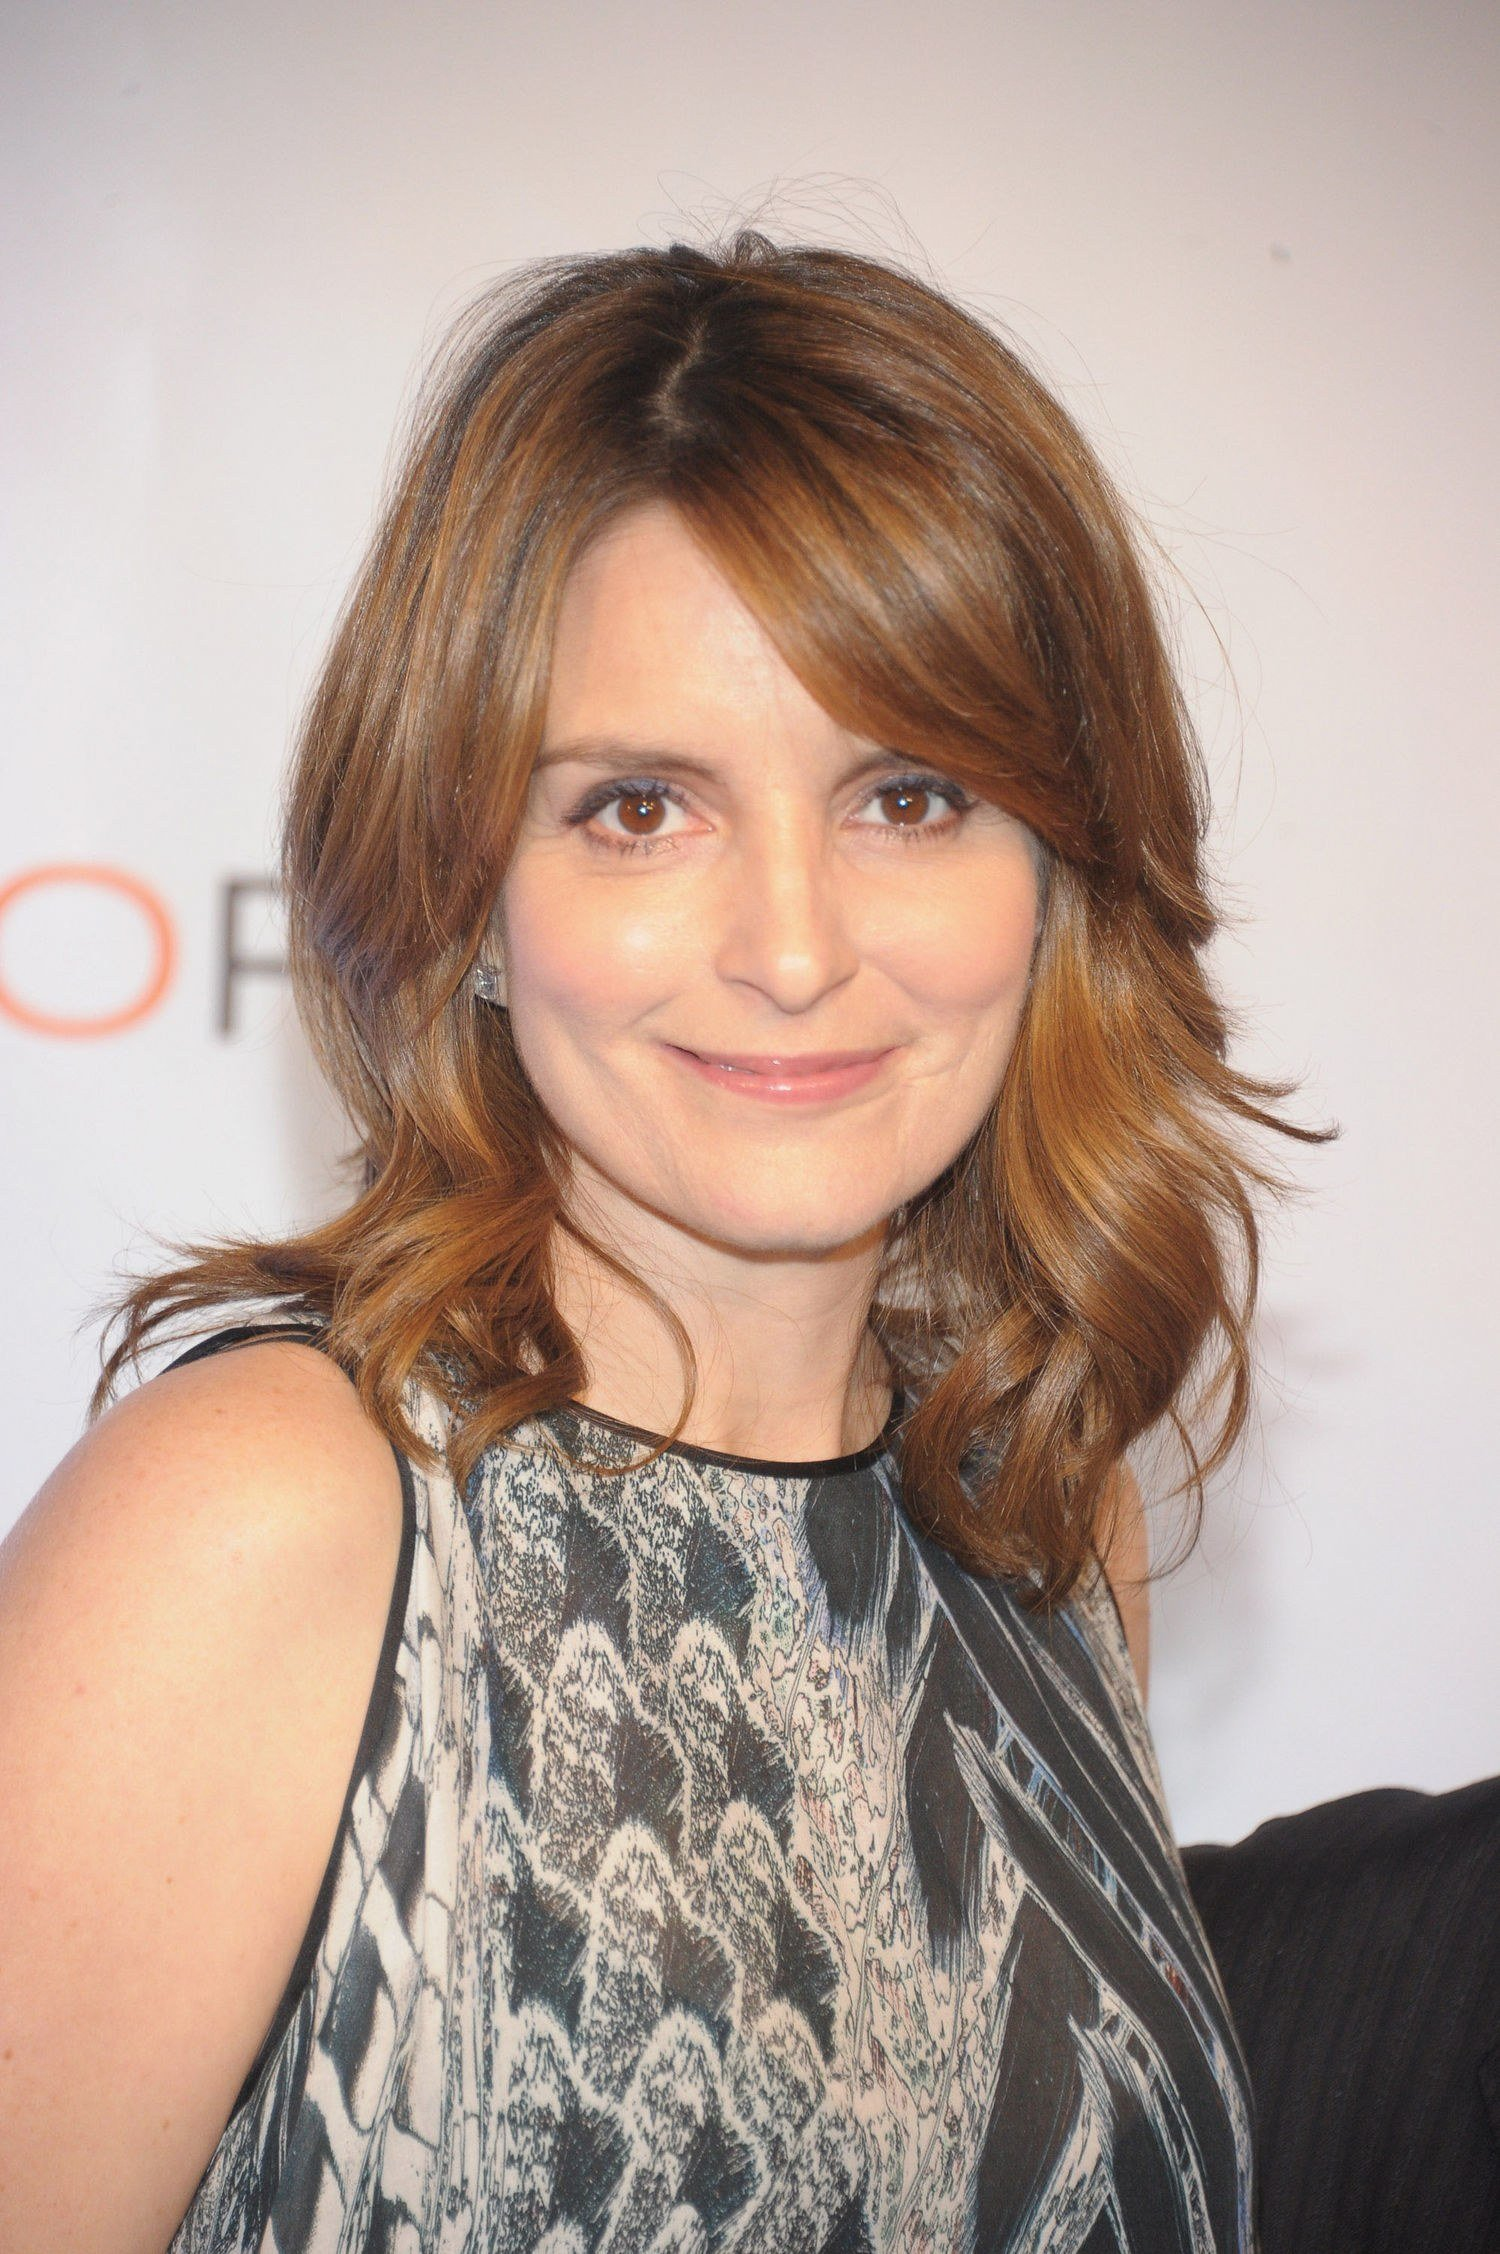 The Best Tina Fey S Hair Color Is Looking Gorgeous These Days Come Pictures